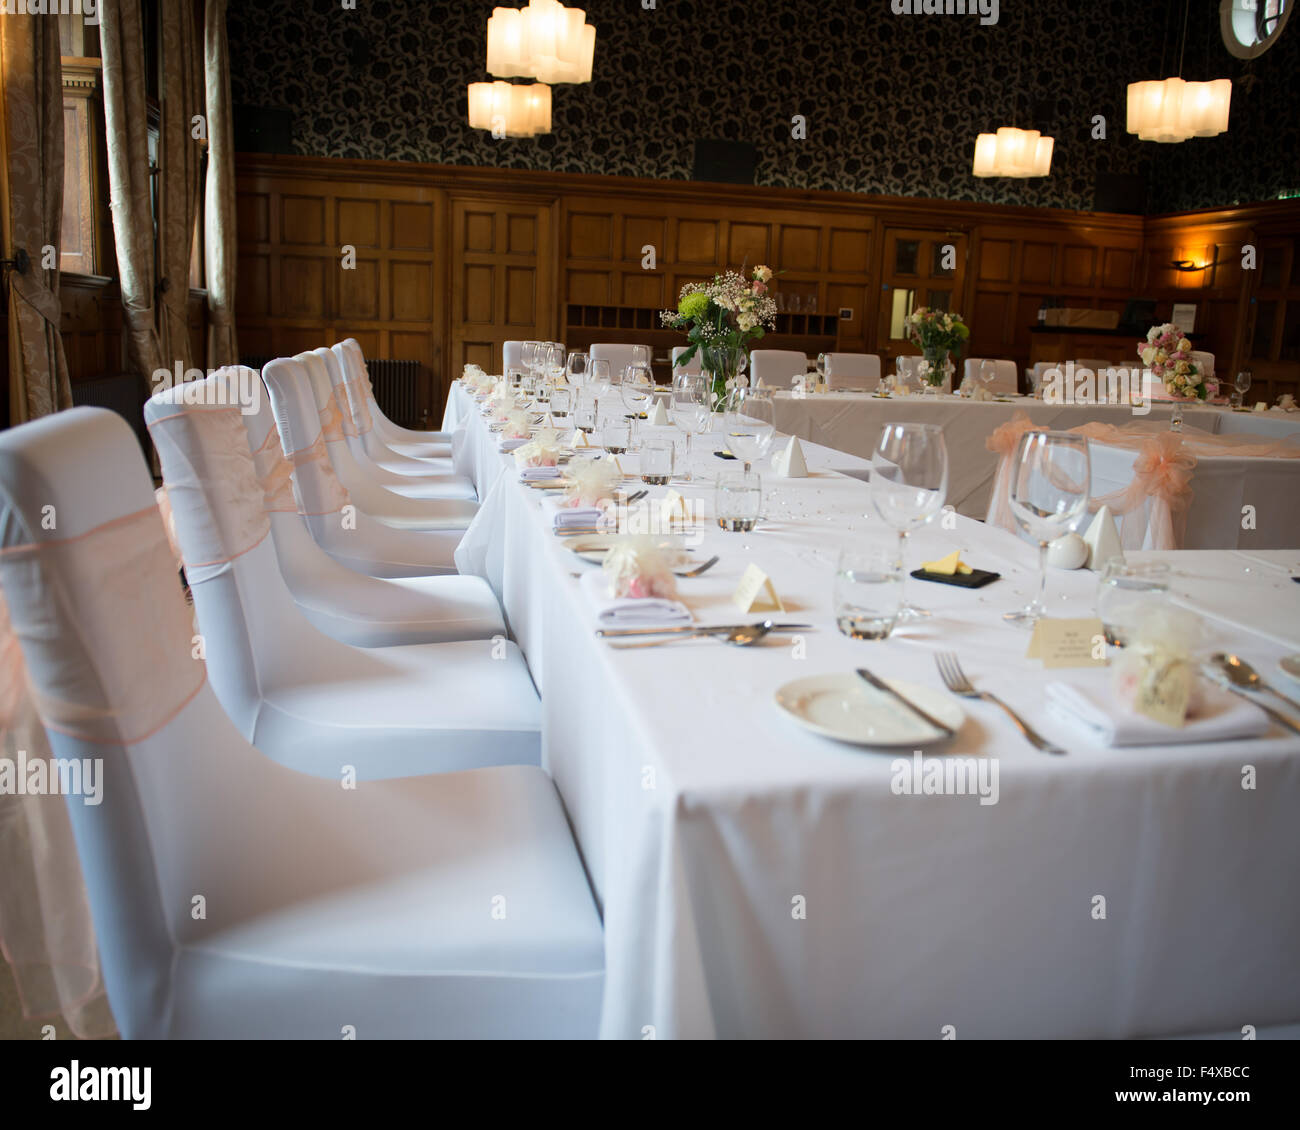 Wedding Reception Table Layout Top With White Tablecloths And Peach Chair Covers Laid Silver Wear Plates Cutlery